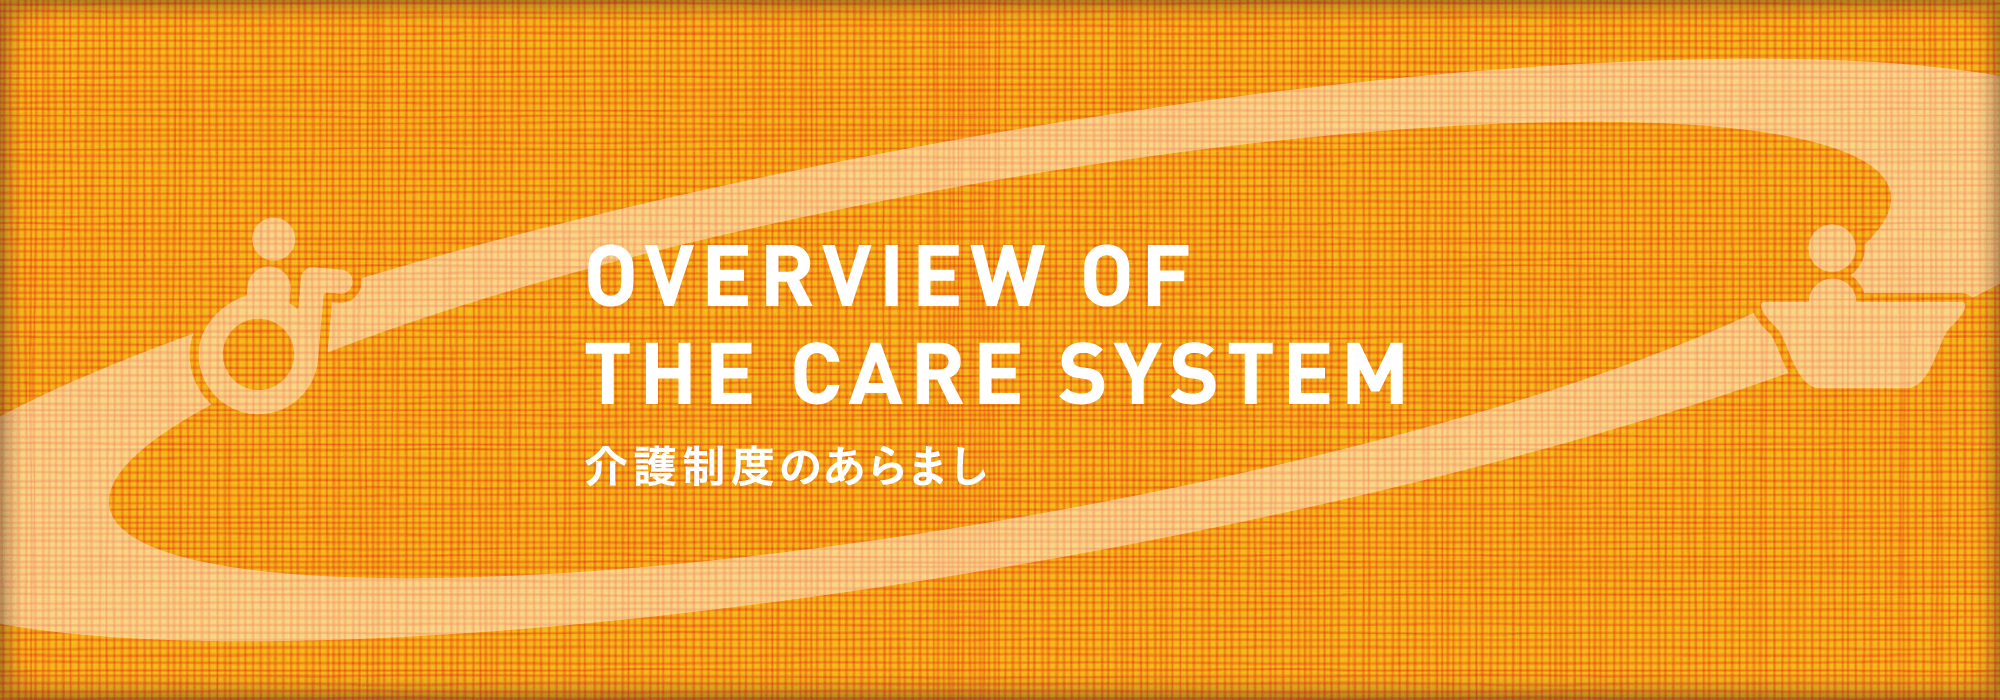 OVERVIEW OF THE CARE SYSTEM 介護制度のあらまし